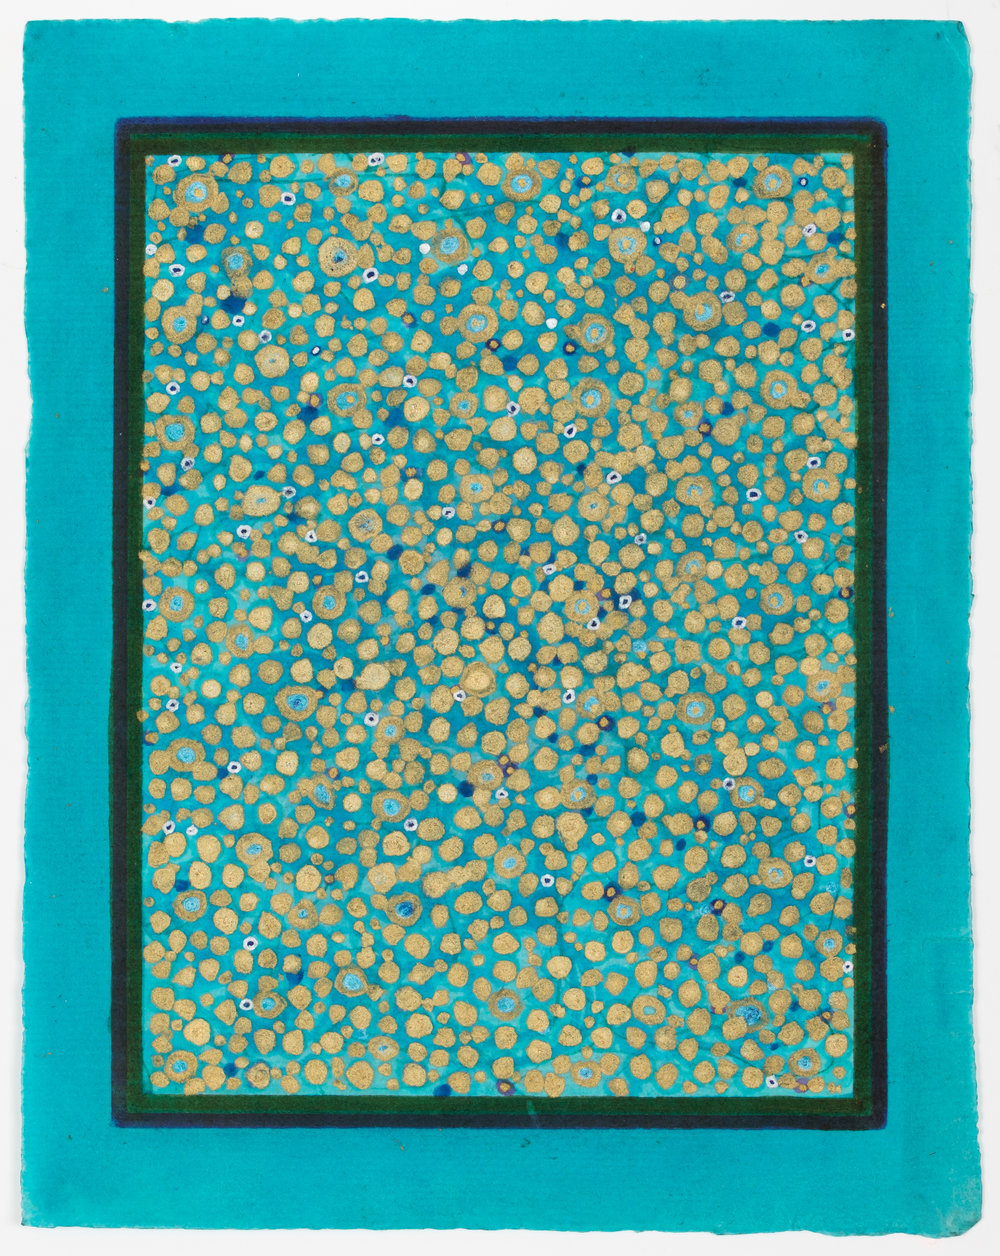 Olivia Munroe  Histories,  2016 beeswax, ink, metallic powder on vintage hand made paper  9 3/4 × 7 5/8 in.